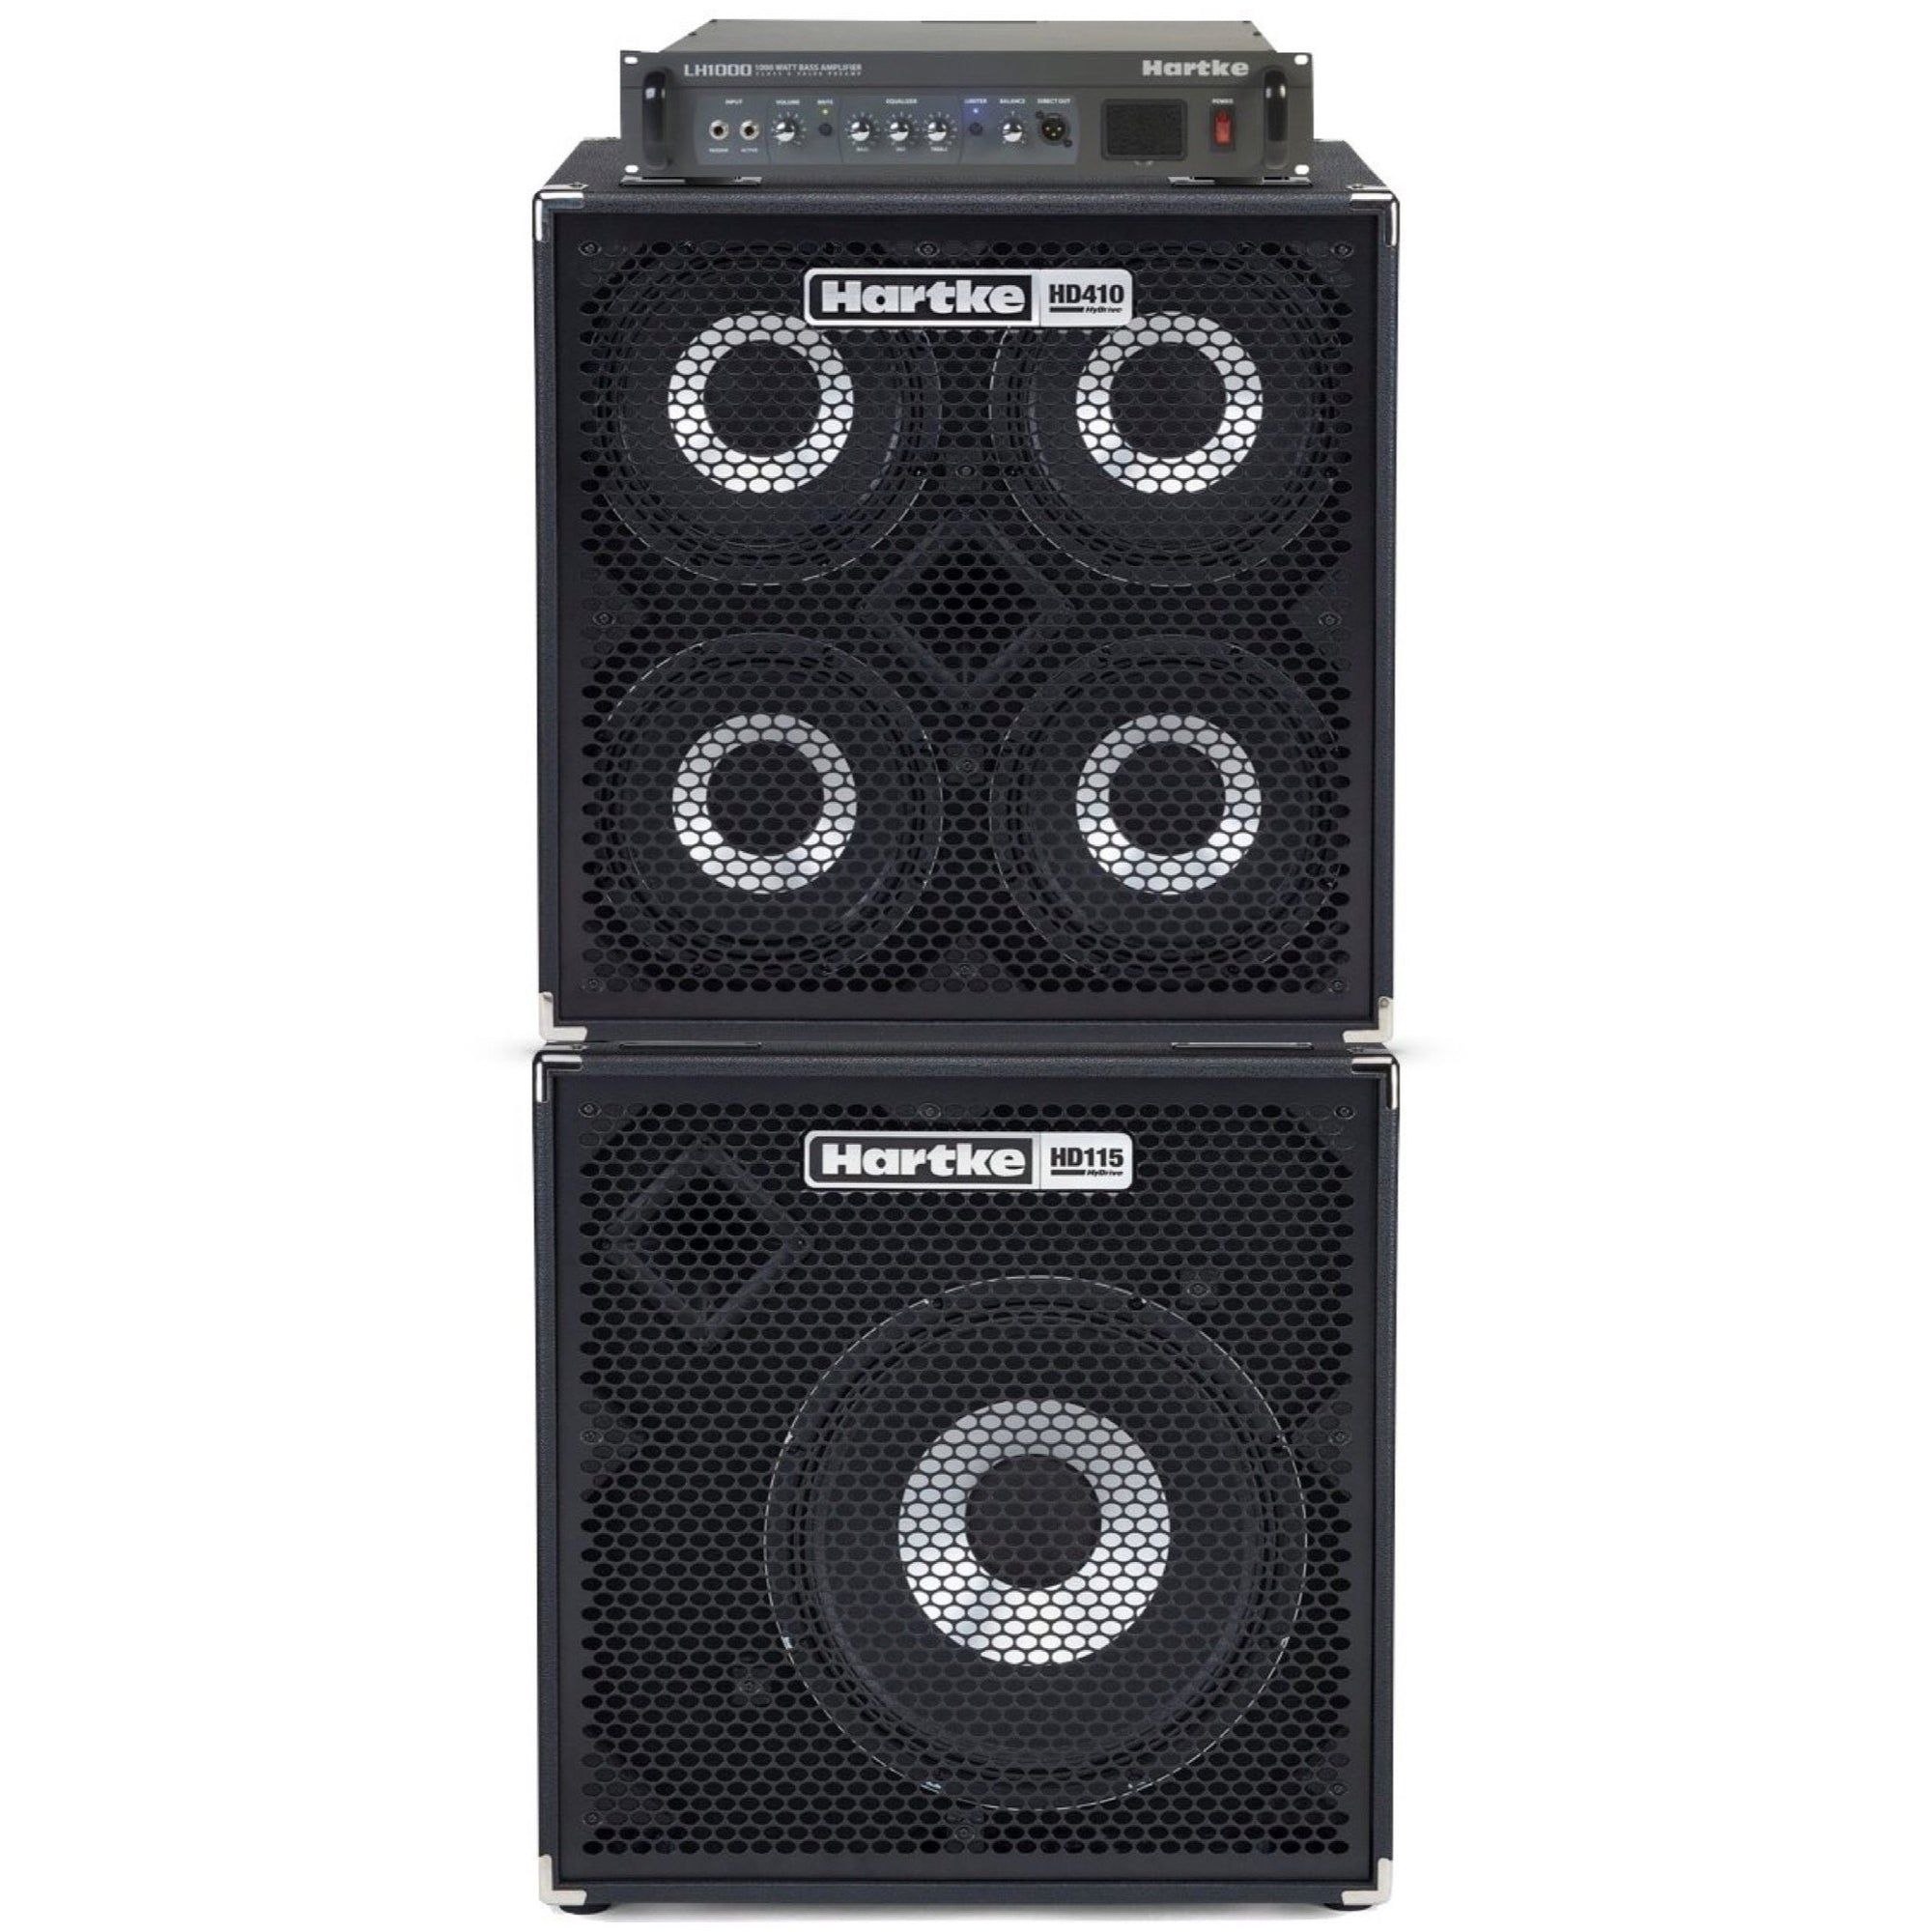 Hartke LH1000 Bass Head with HD410 and HD115 Bass Cabinet Full Stack Pack